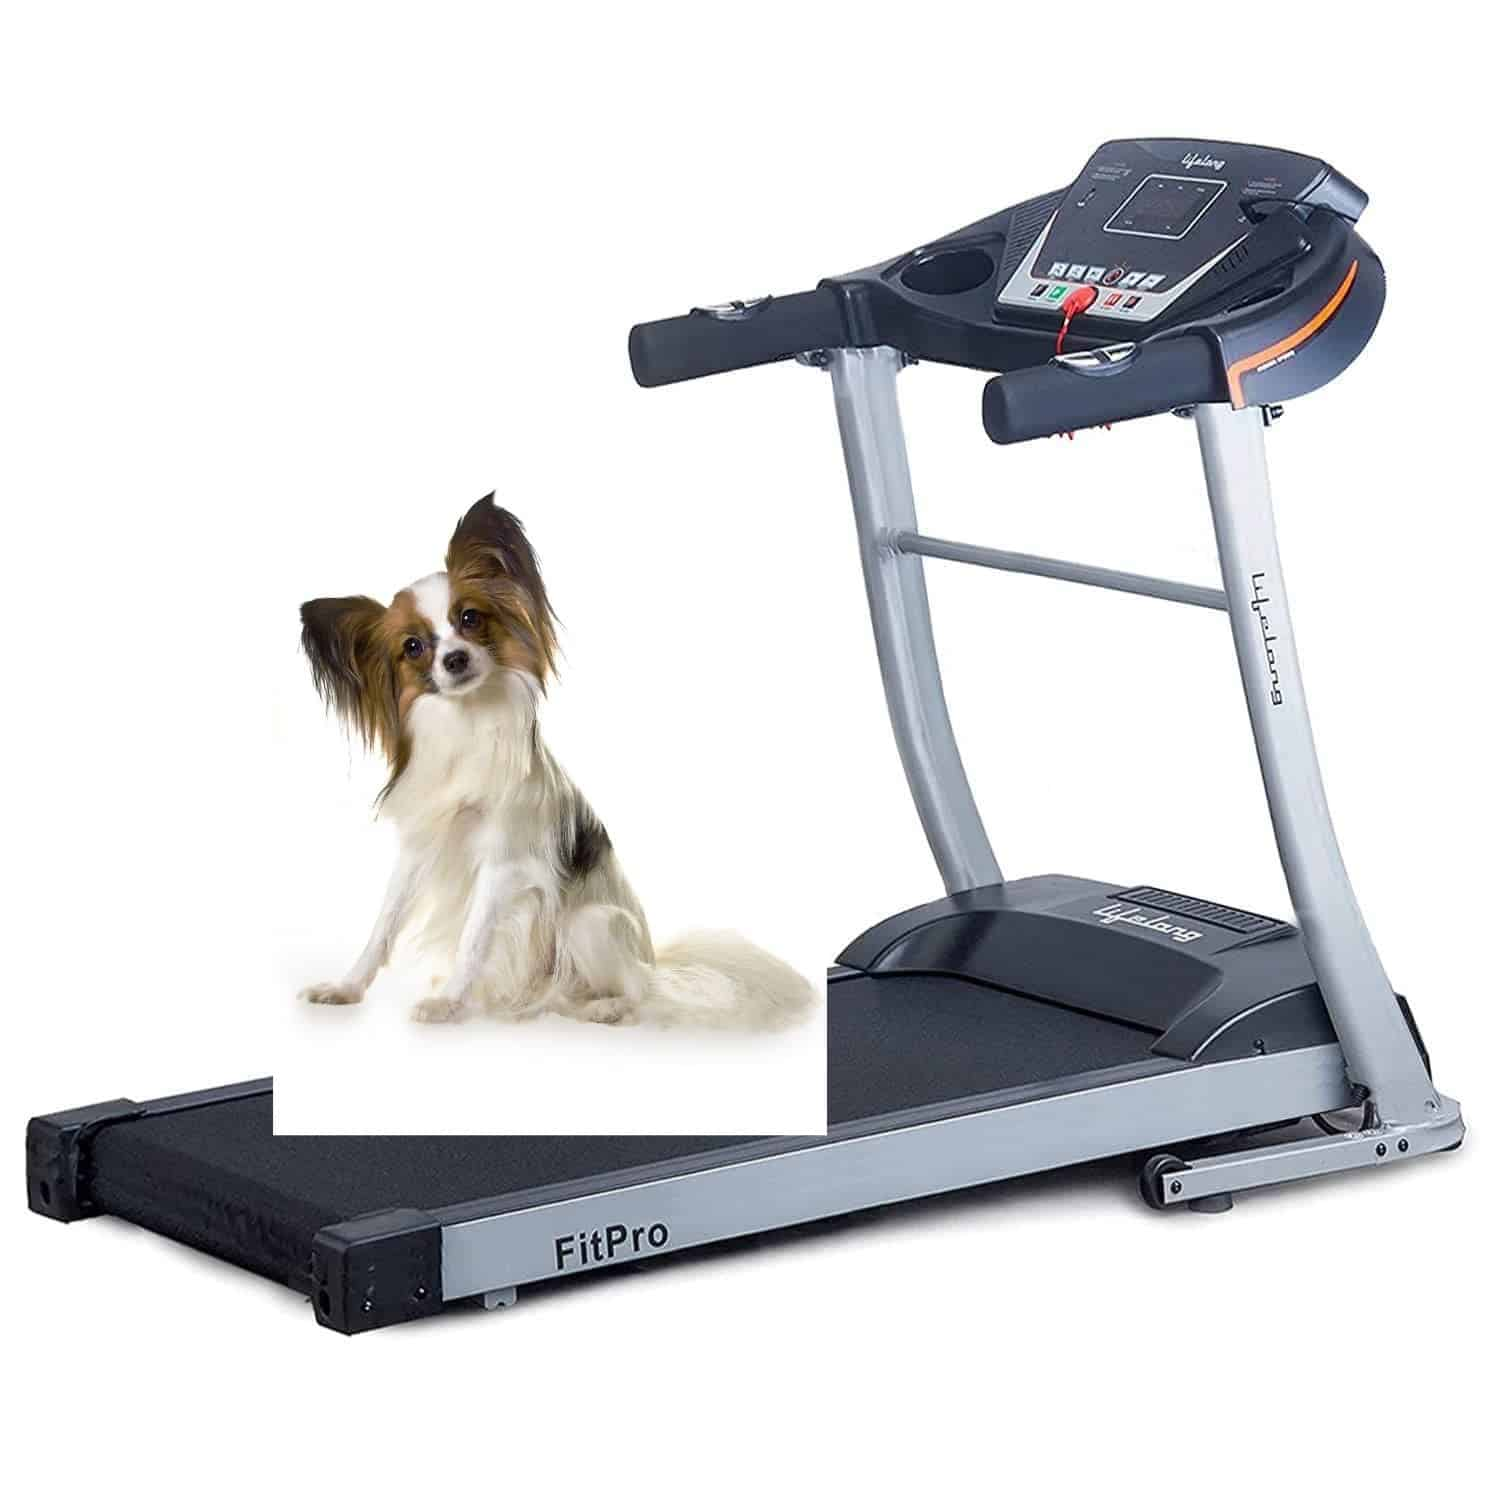 Best treadmill for Dogs & Humans